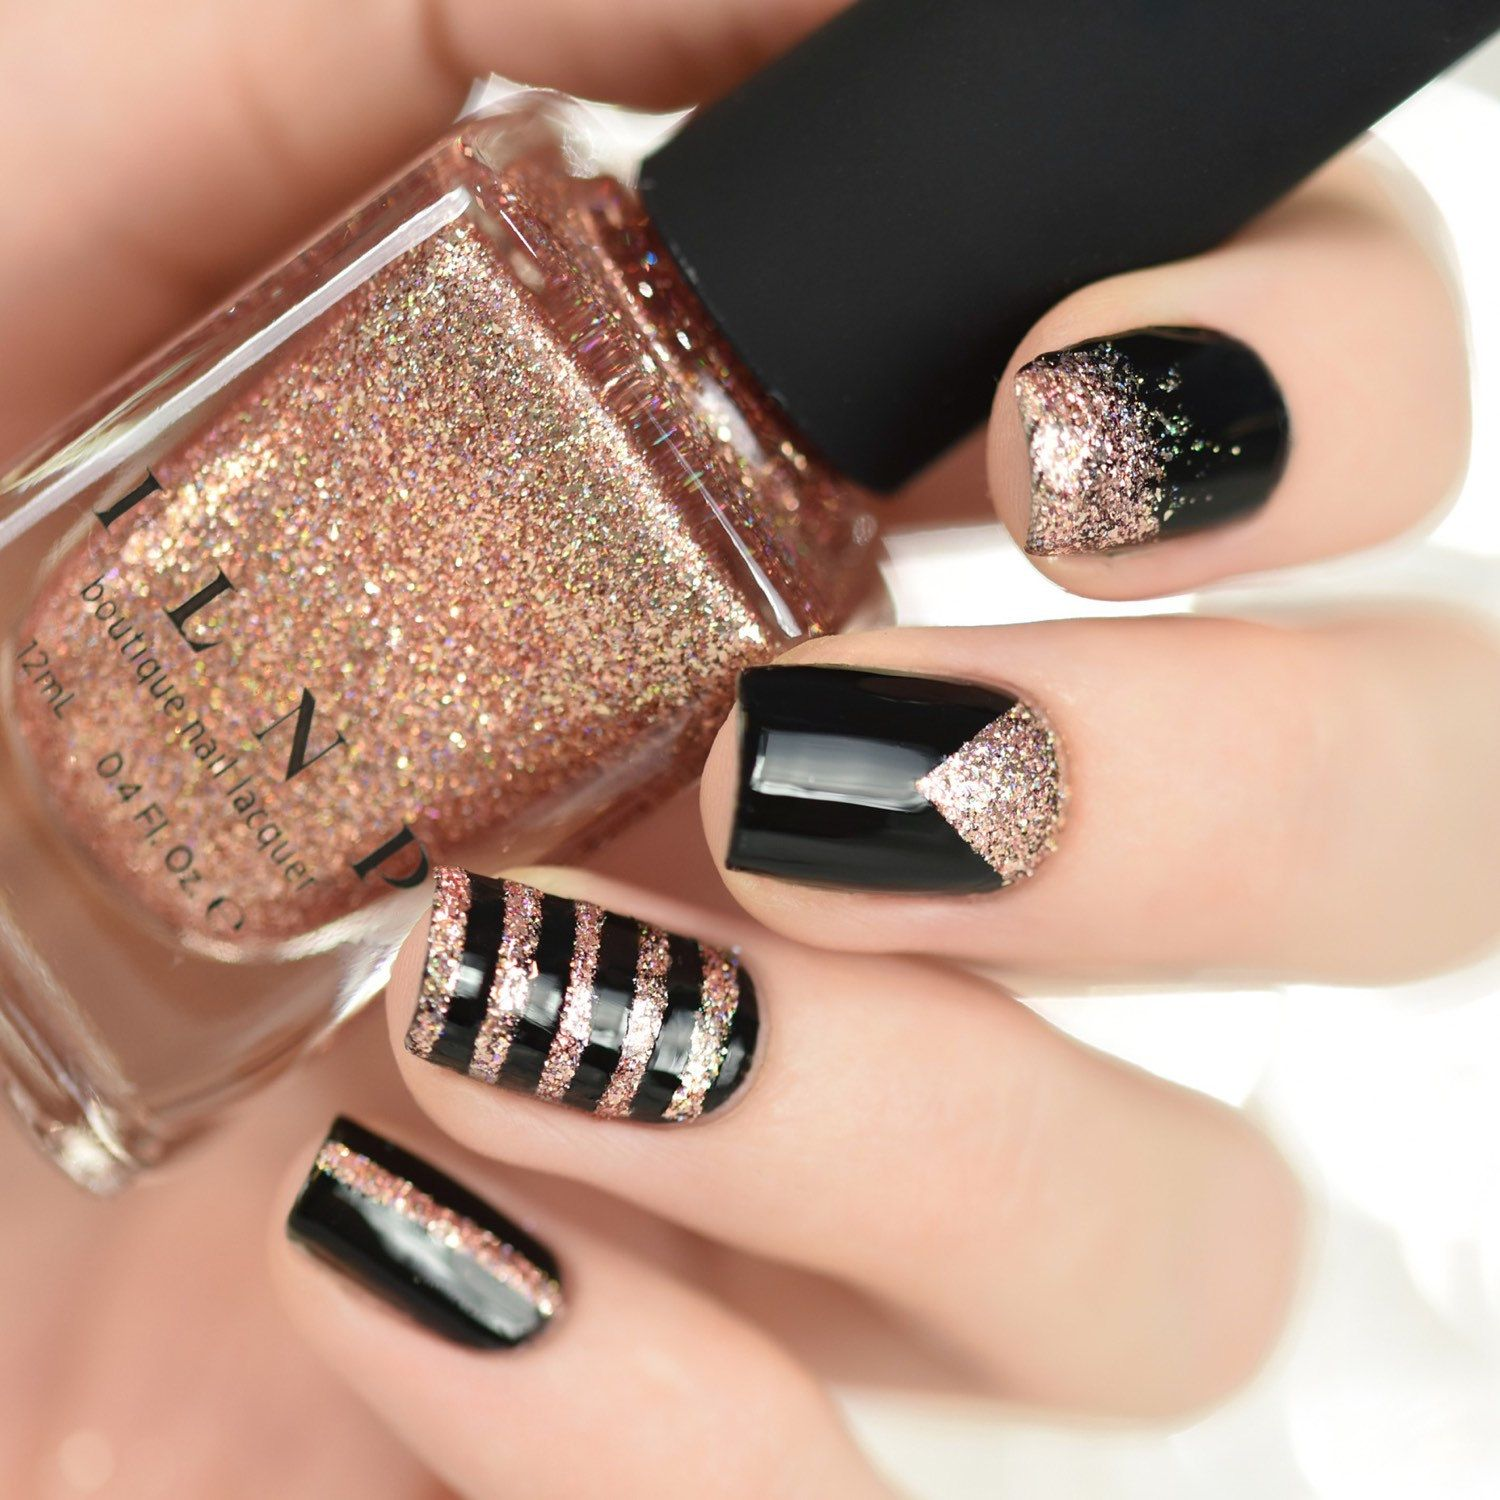 Ilovenp on etsy nail art using ultra metallics nail polish need a little nye nail inspo check out this nail art using our ultra metallics polish juliette paired with a black base tell us about your new years mani prinsesfo Images